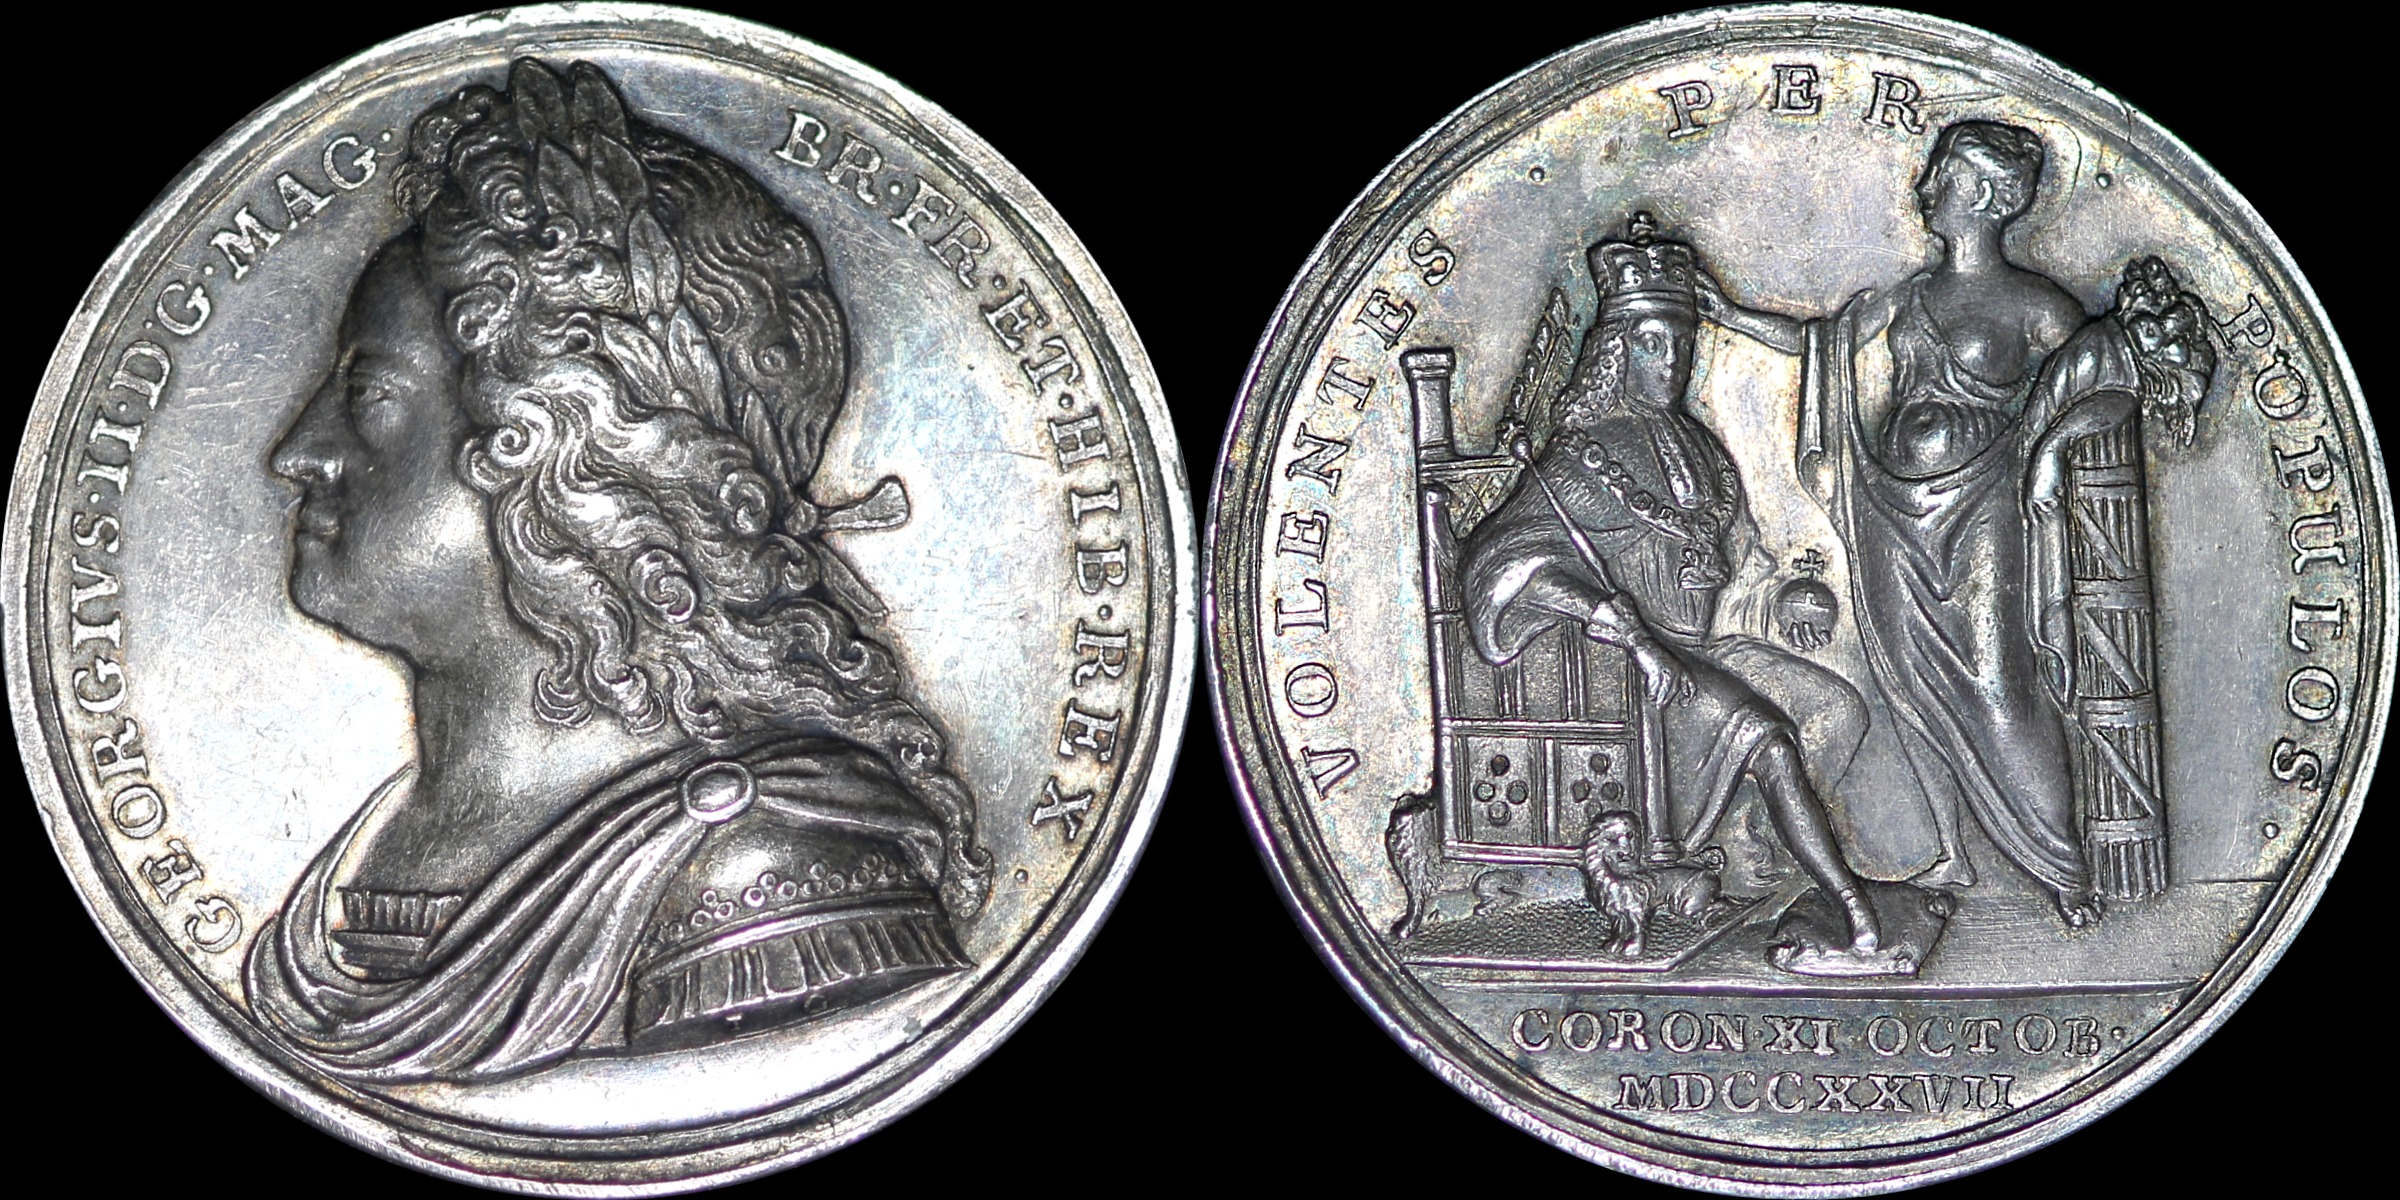 1727_coronation_medal_01_ref_02220_02_2400.png